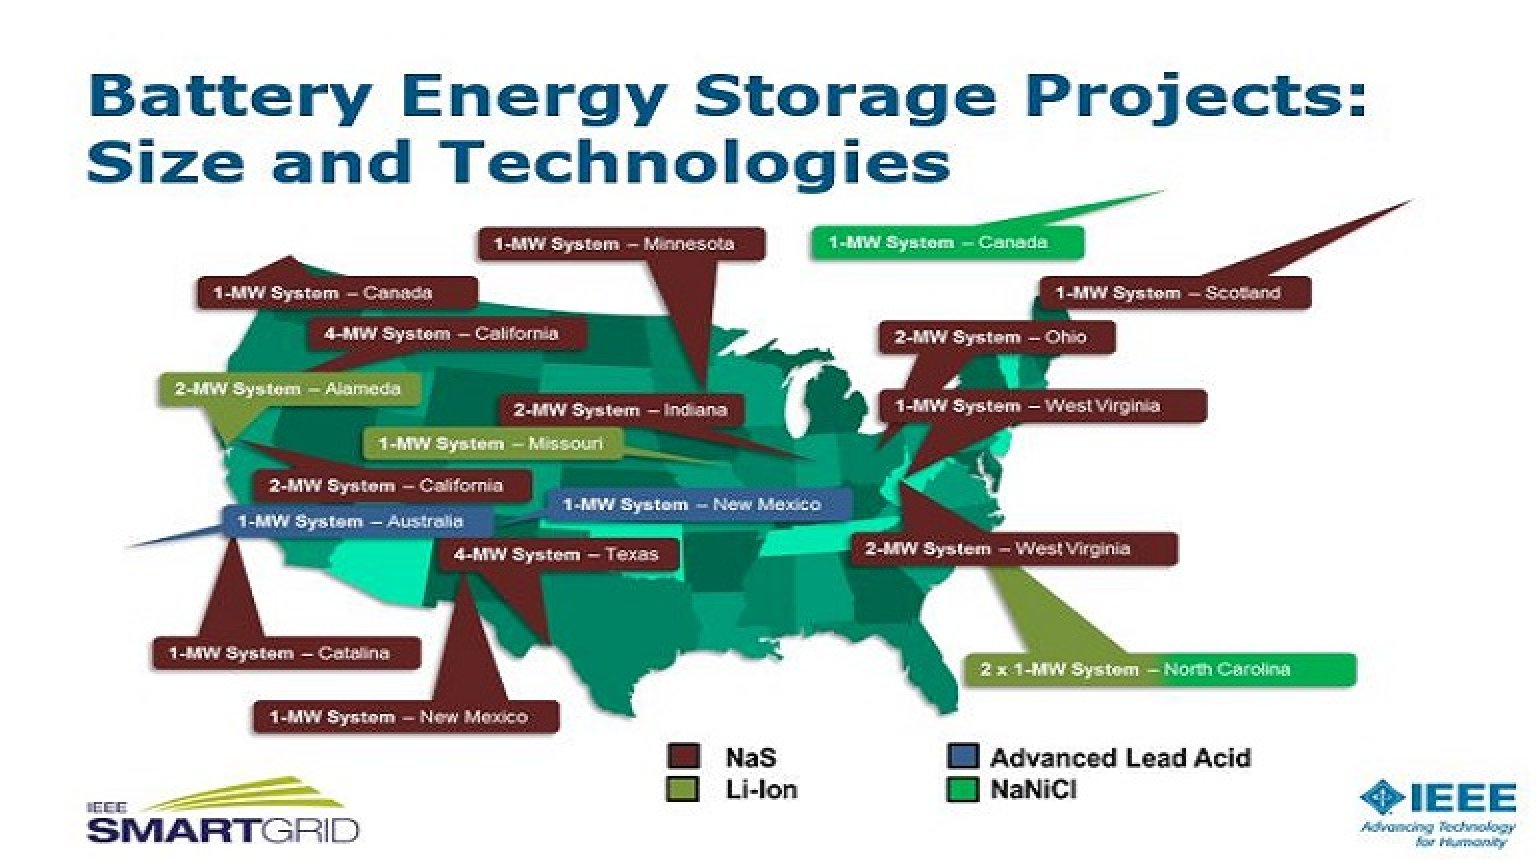 Battery Energy Storage Systems: Grid Applications, Technologies, and Modelling with Dr. Saeed Kamalinia